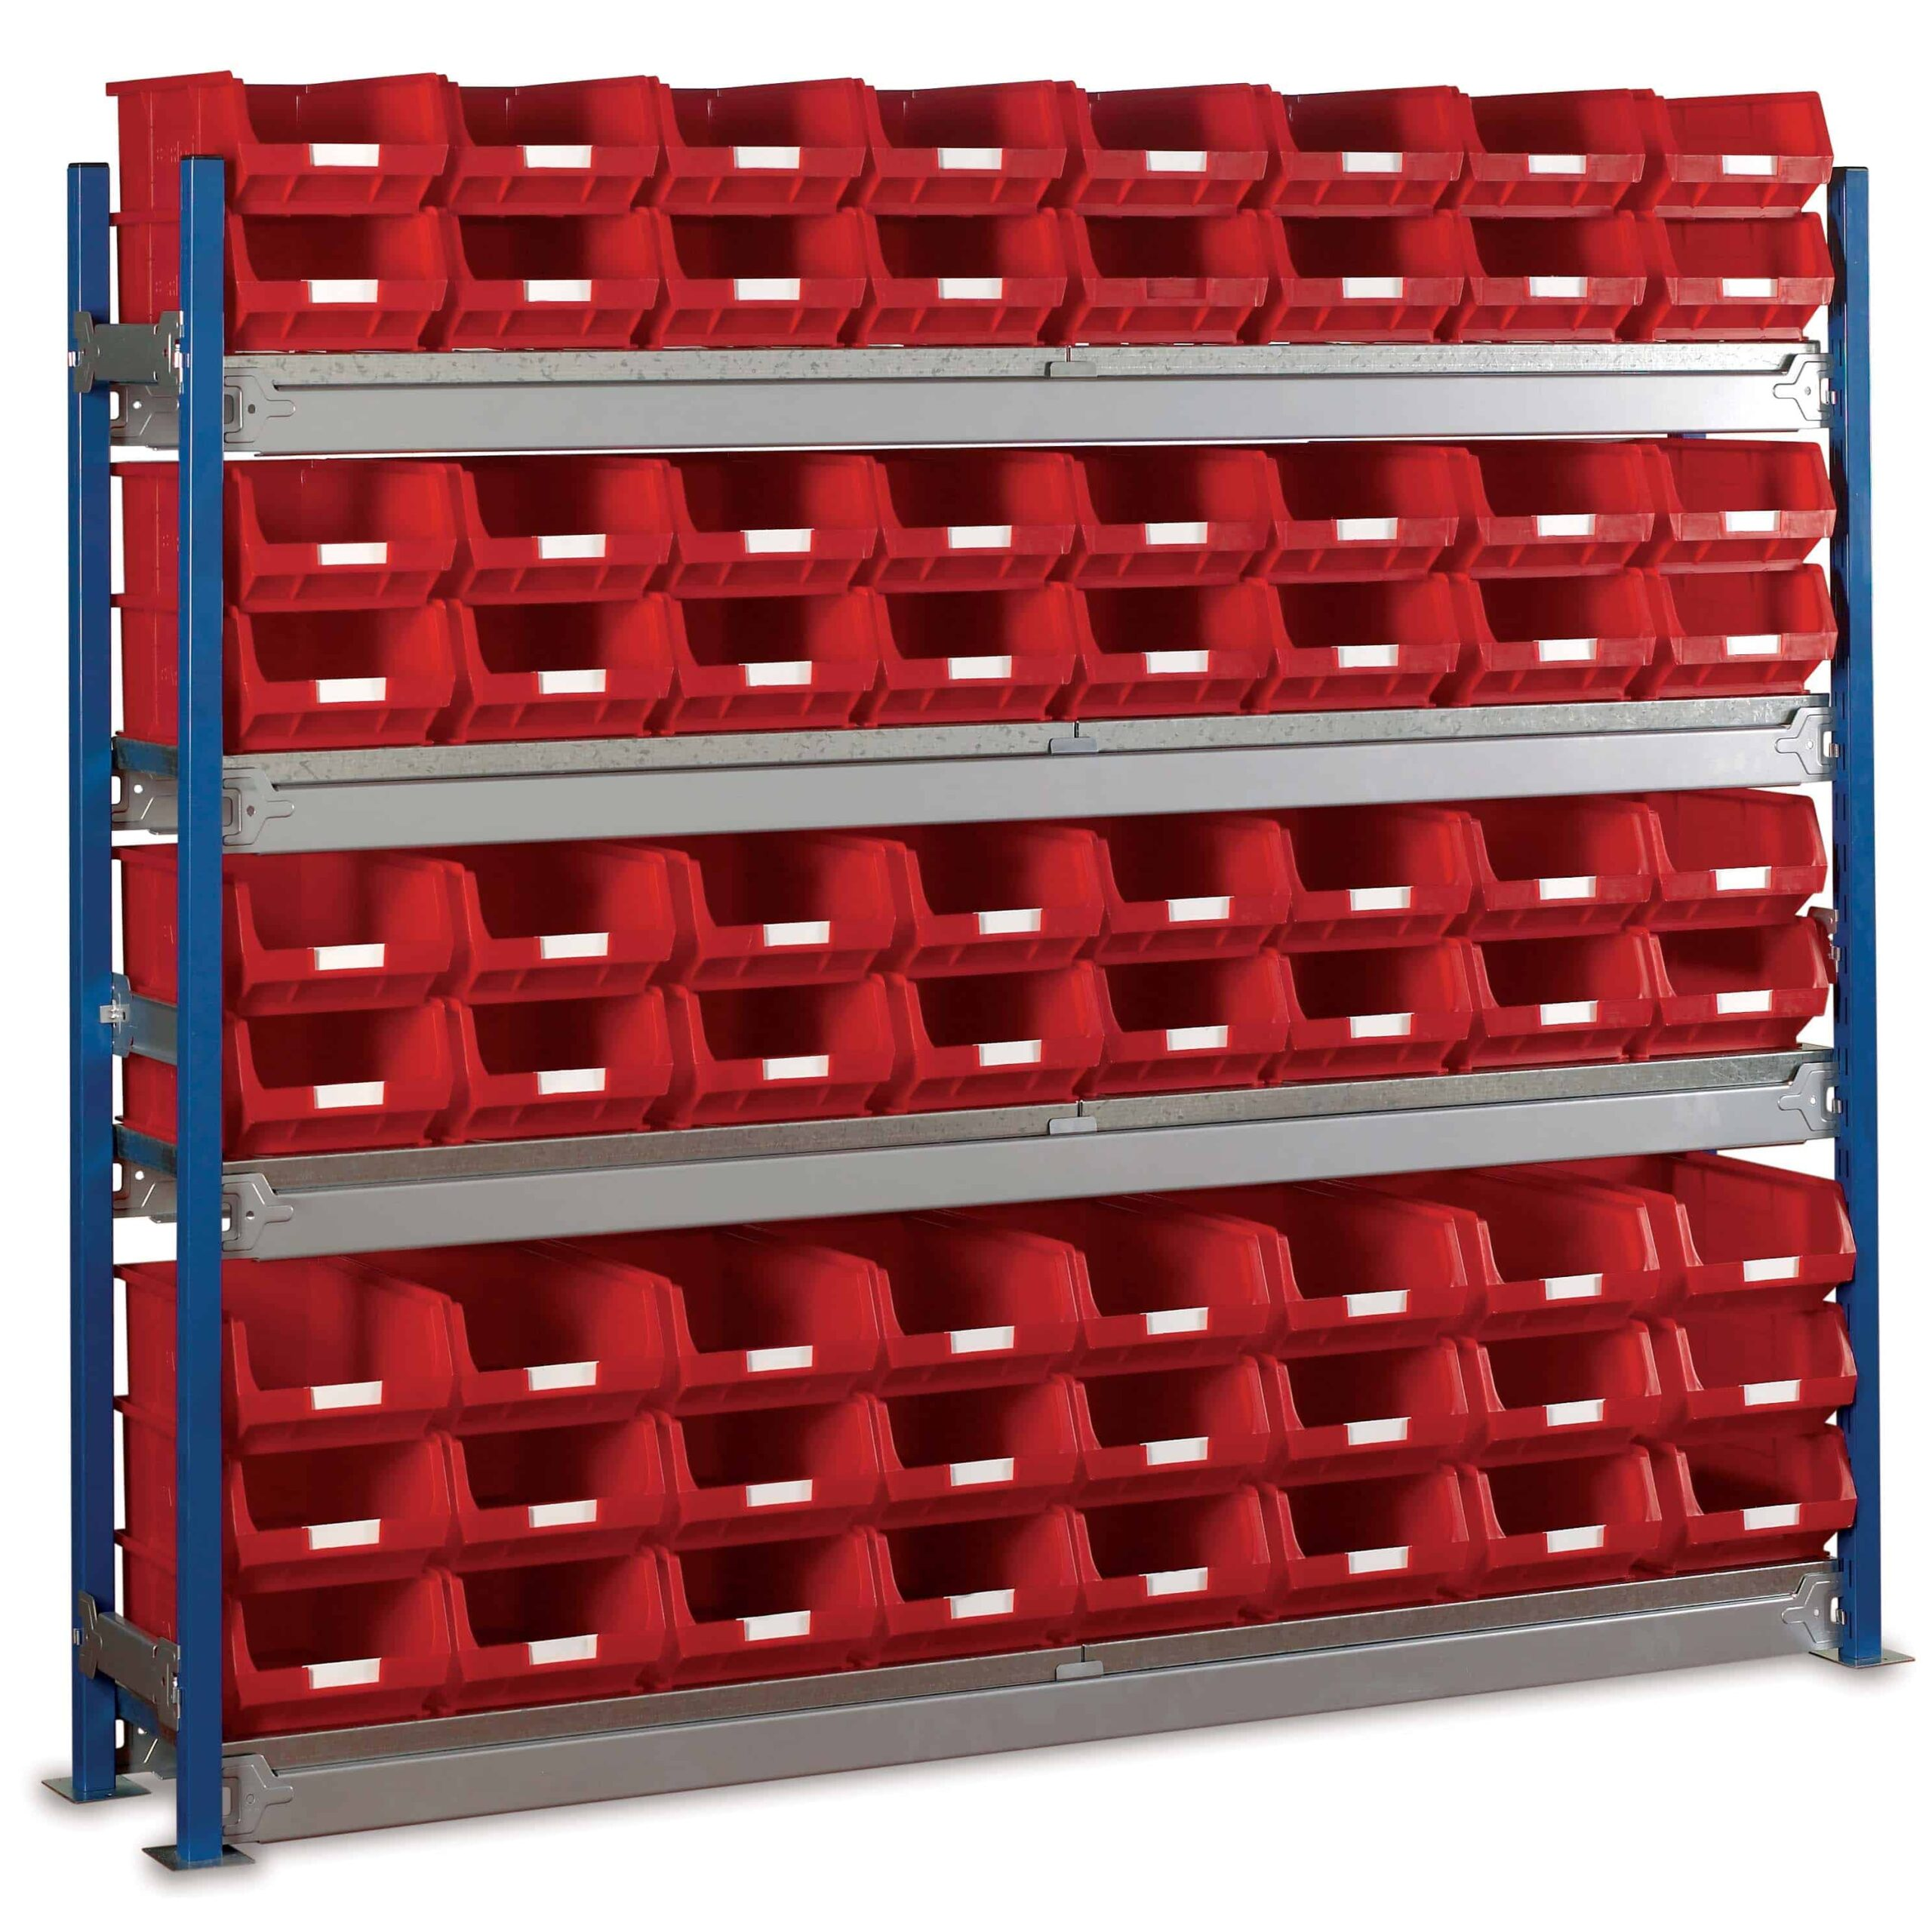 Toprax Longspan Bay Shelving TC4 Bin Kits